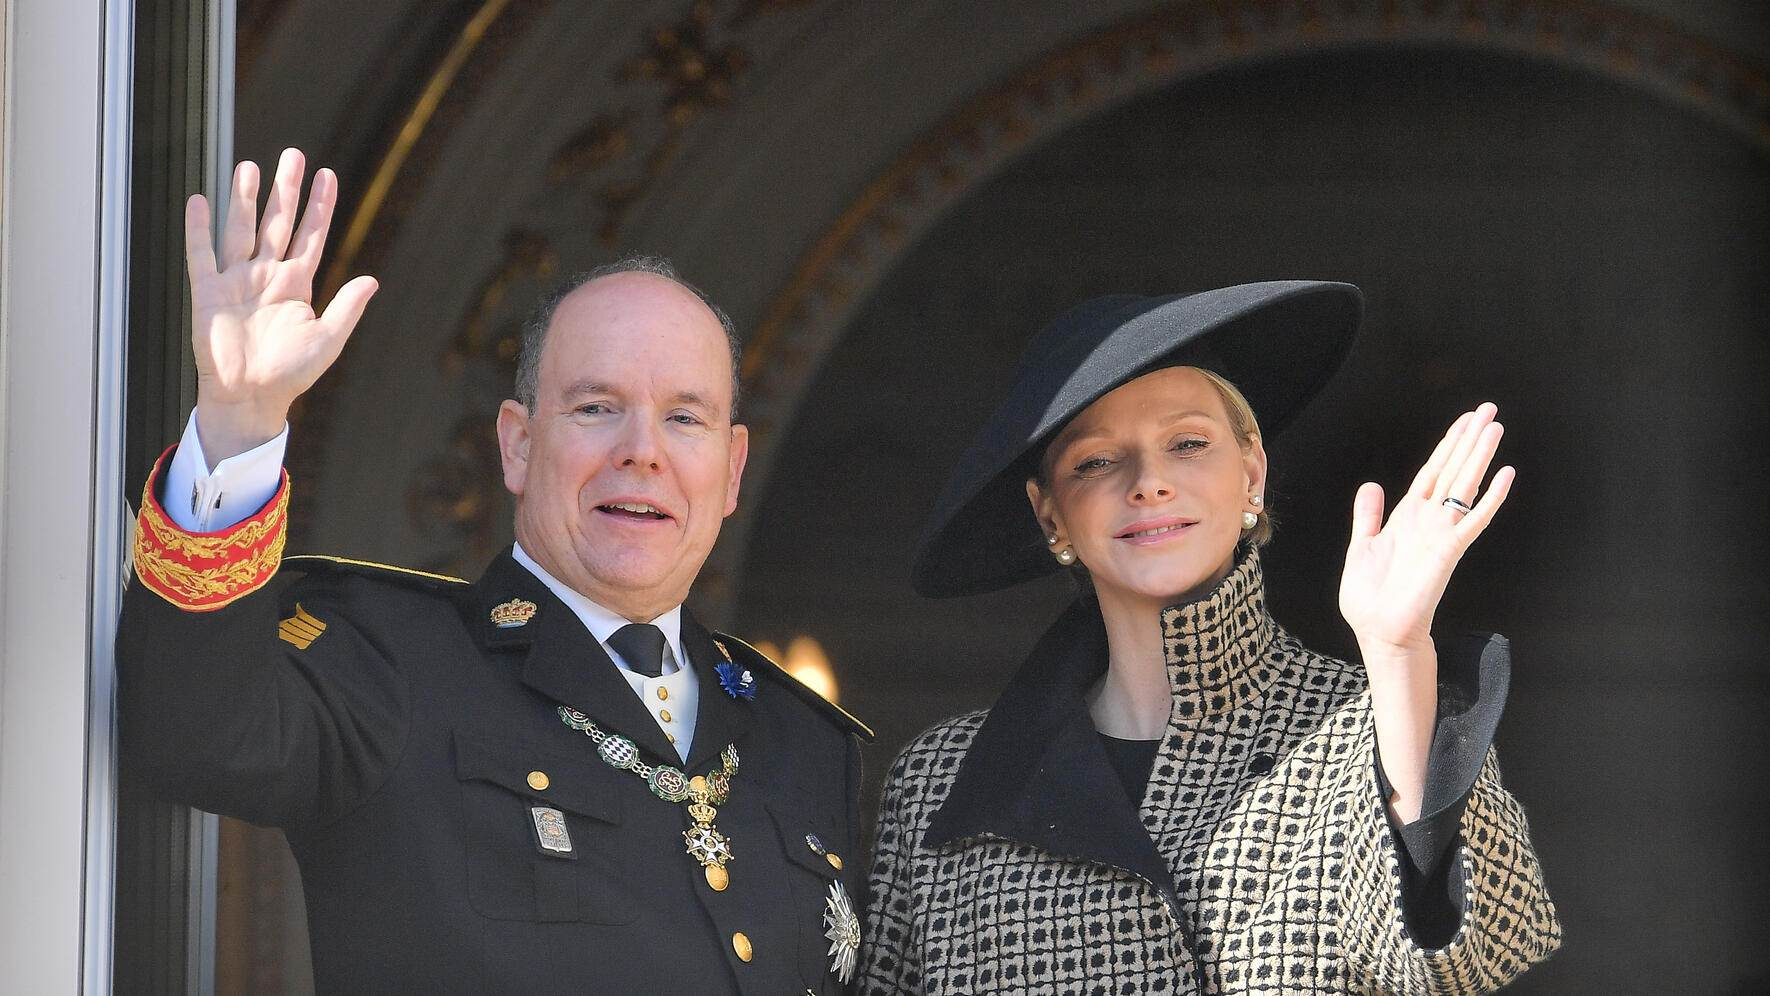 MONTE-CARLO, MONACO - NOVEMBER 19:  (L-R) Prince Albert II of Monaco and Princess Charlene of Monaco attend Monaco National Day Celebrations on November 19, 2018 in Monte-Carlo, Monaco.  (Photo by Stephane Cardinale - Corbis/Corbis via Getty Images)